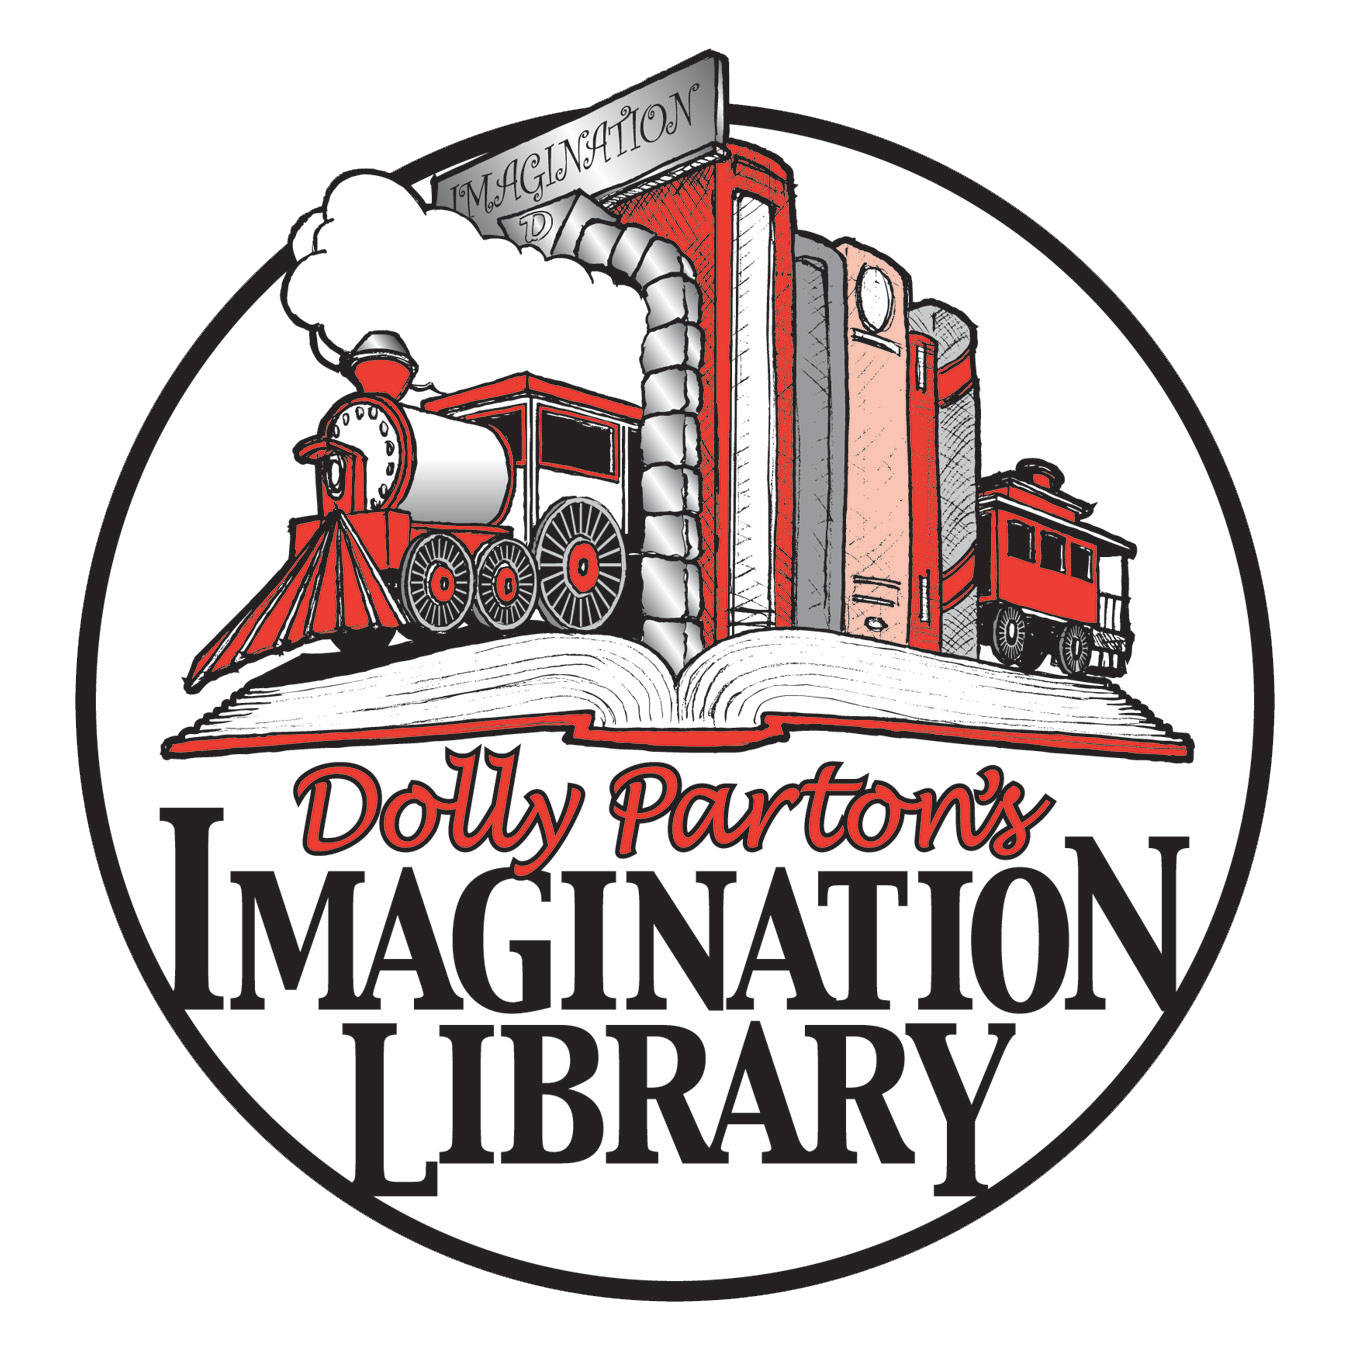 Pulaski County Imagination Library